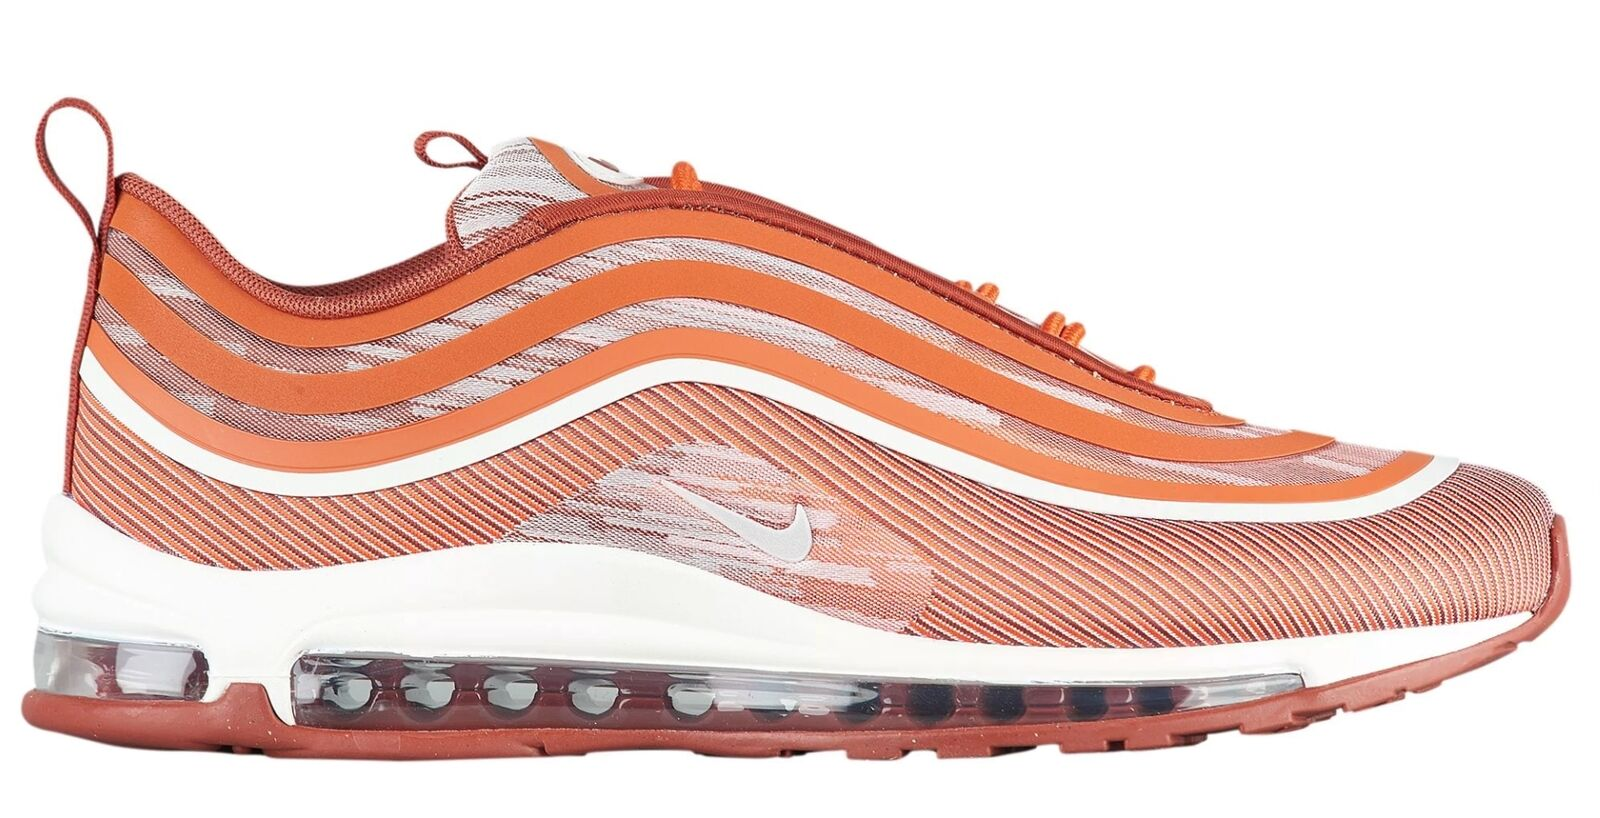 Nike Air Max 97 UL '17 Mens 918356-800 918356-800 918356-800 Coral Mars Stone Running shoes Size 11.5 cee28f